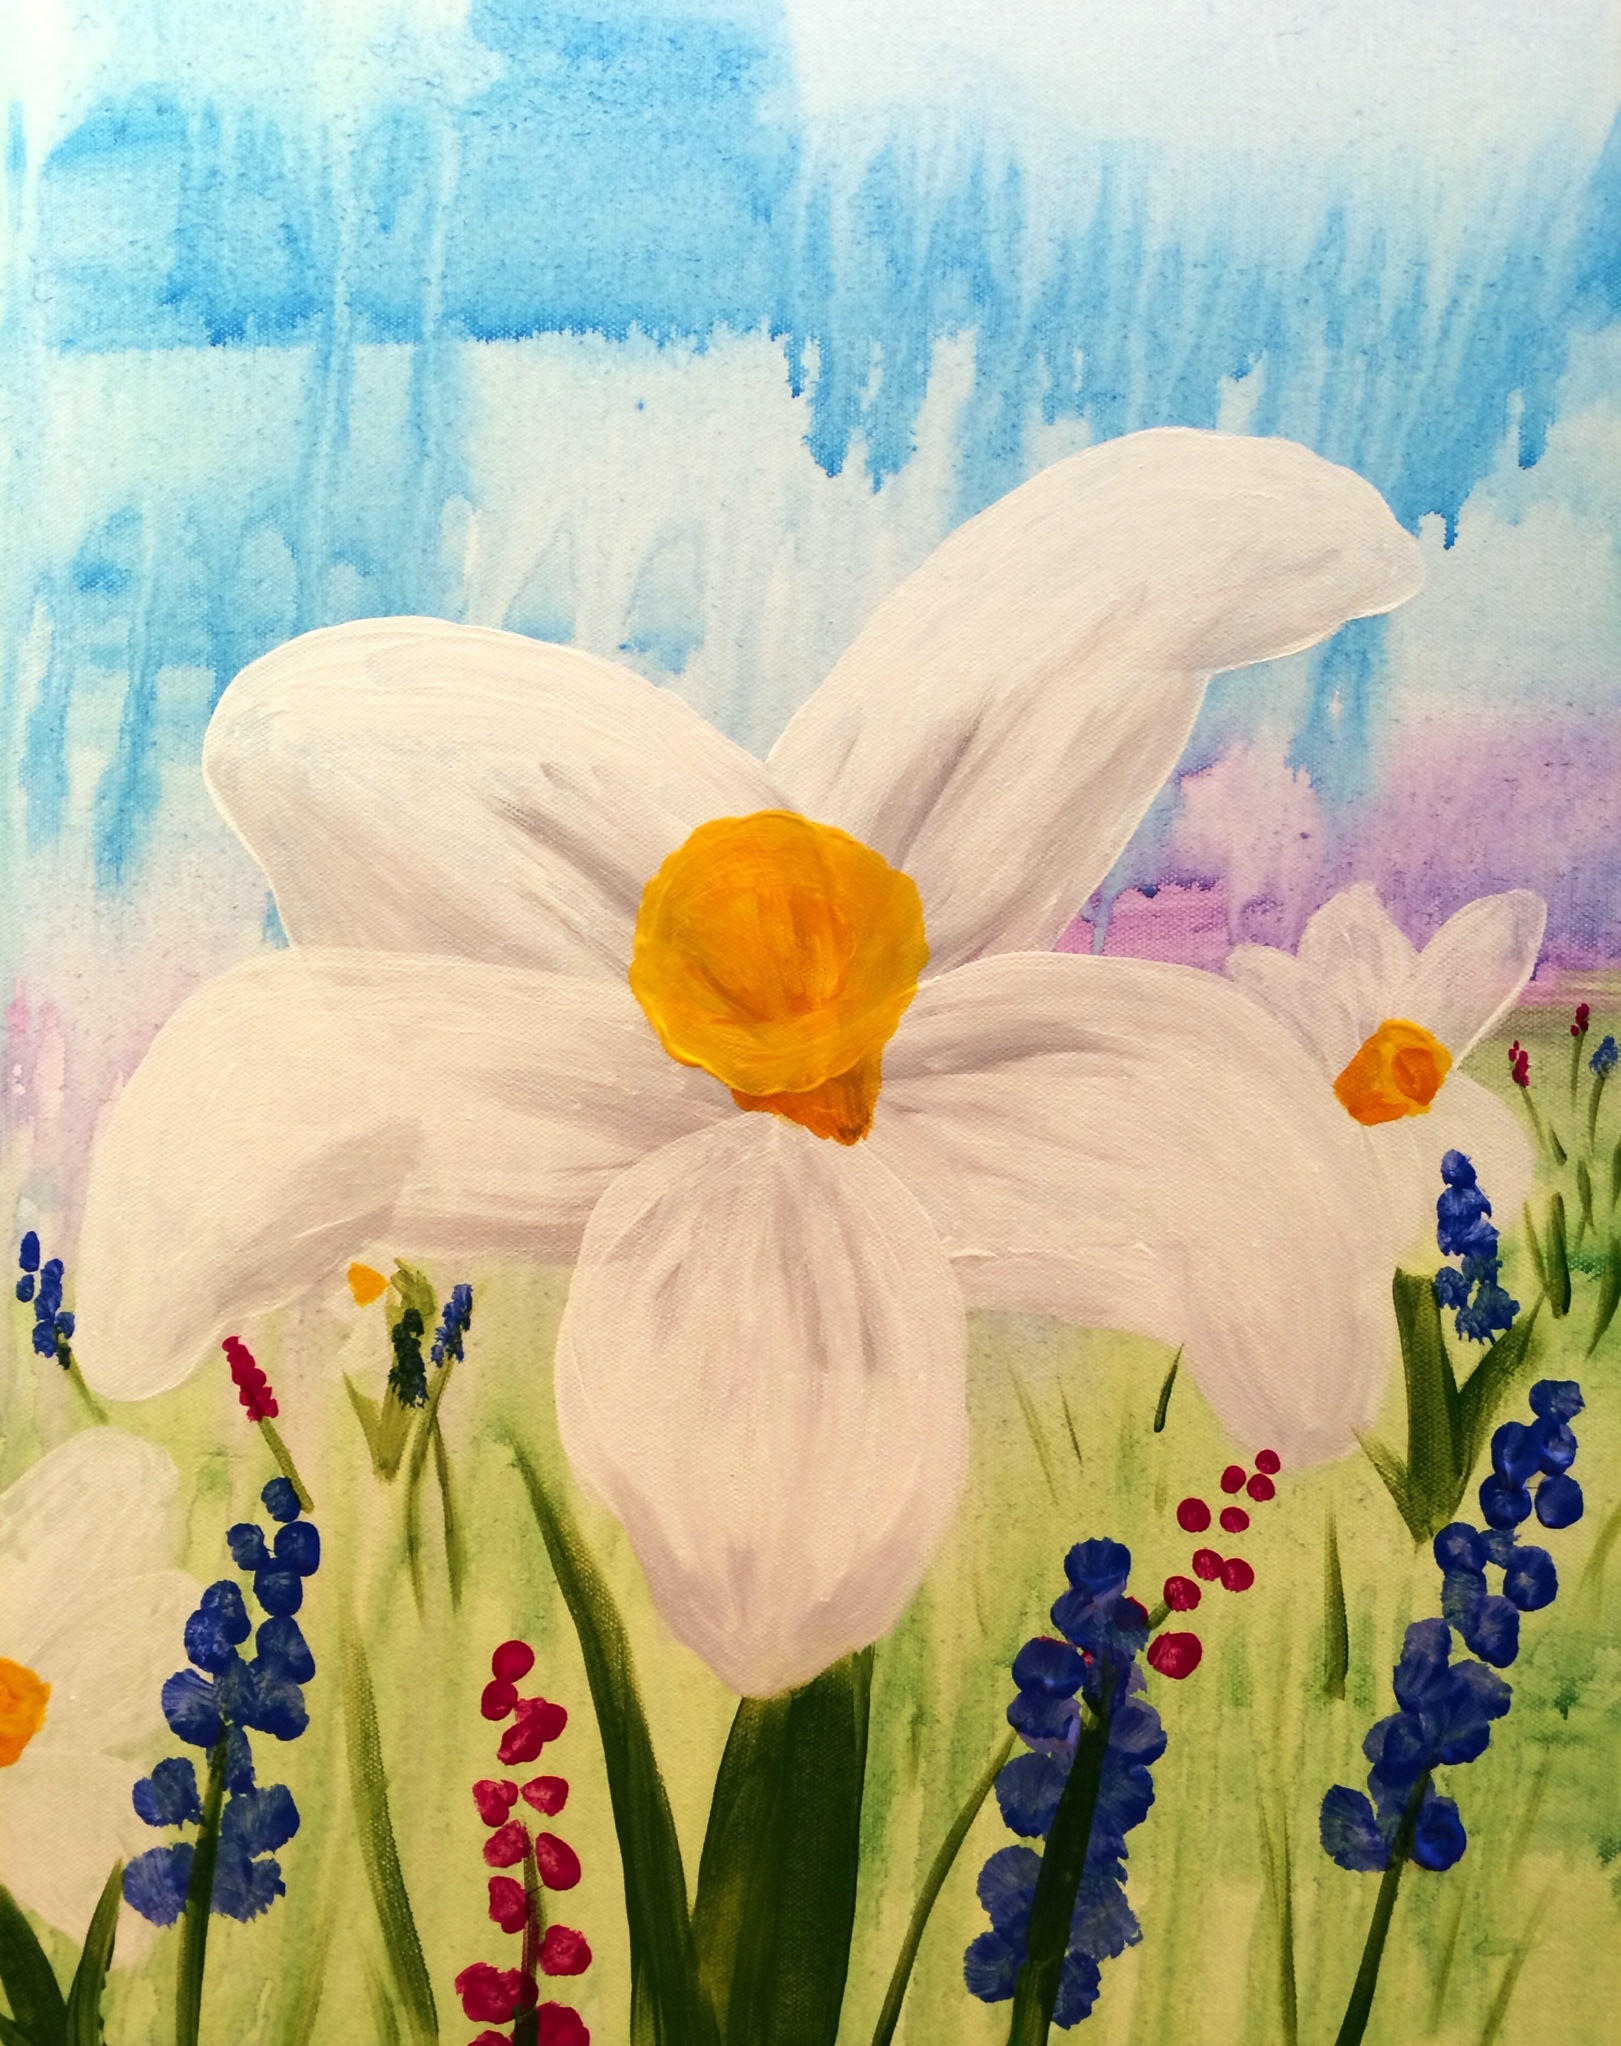 For more information about hosting your own Private Painting Party with Pop & Paint, please email us at angie@popandpaint.com or call us at (503) 893-8767!